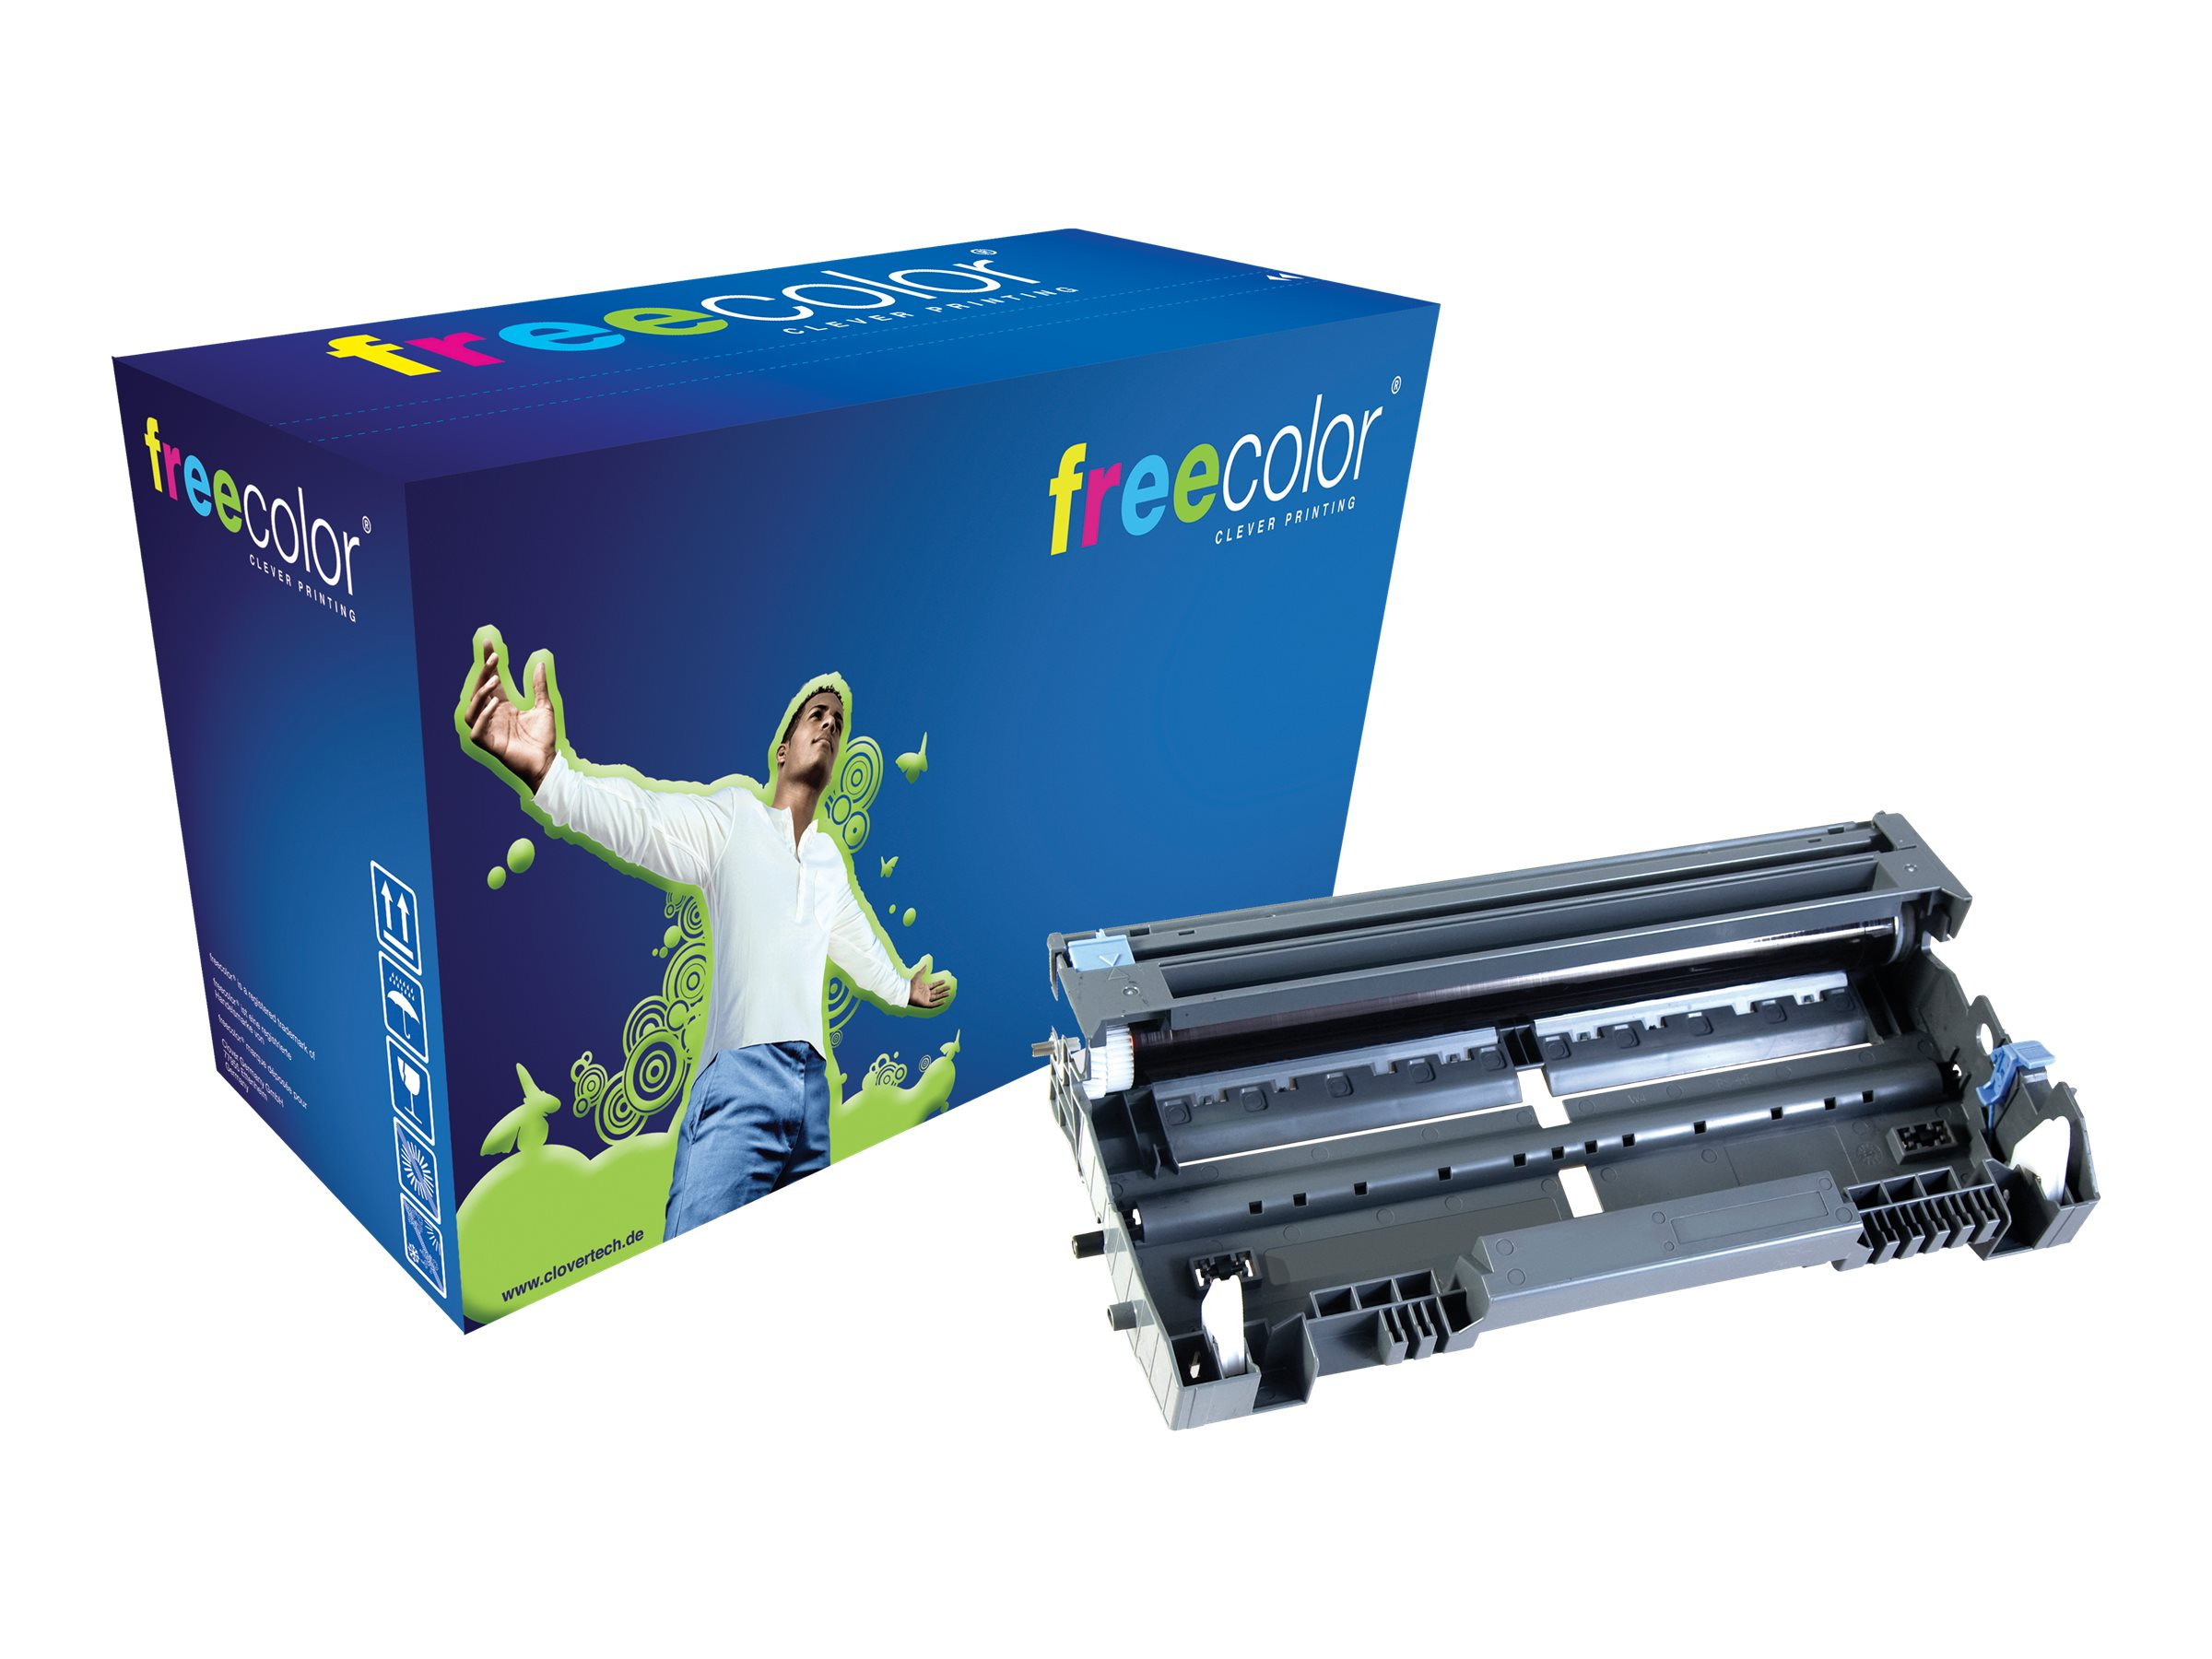 freecolor - 1 - Trommel-Kit (Alternative zu: Brother DR3100) - für Brother DCP-8060, 8065, HL-5240, 5250, 5270, 5280, MFC-8460, 8860, 8870